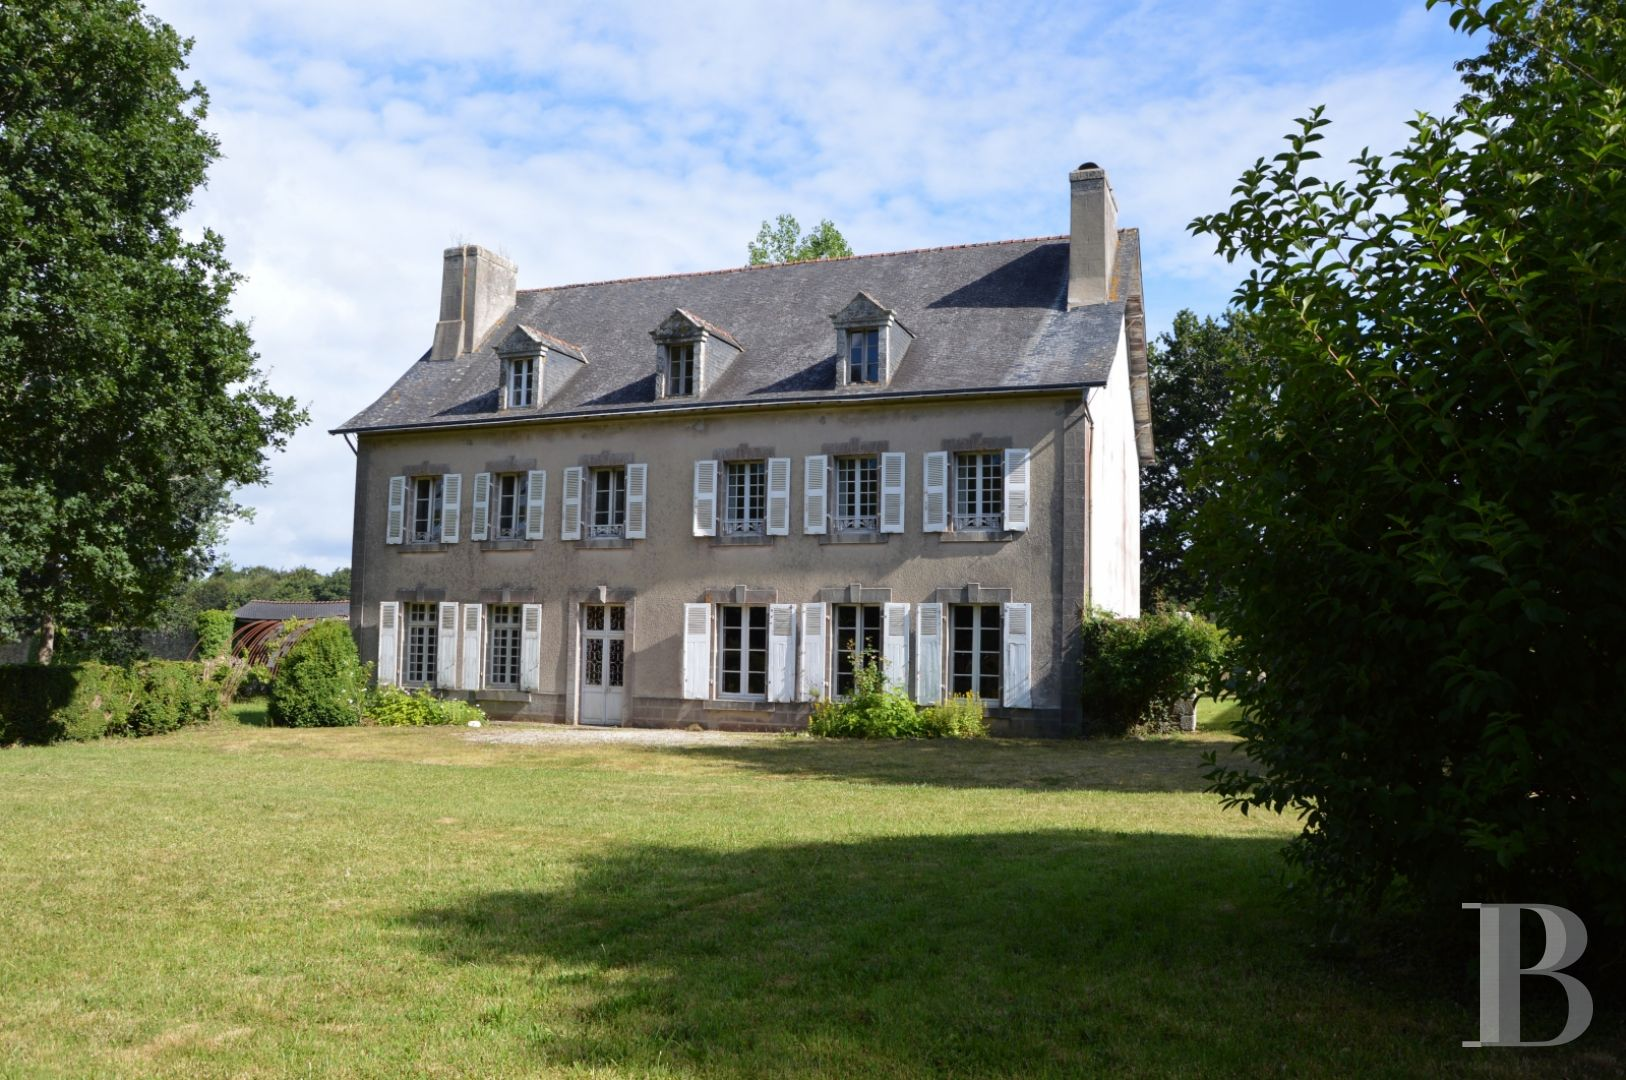 France mansions for sale brittany finistere property - 2 zoom